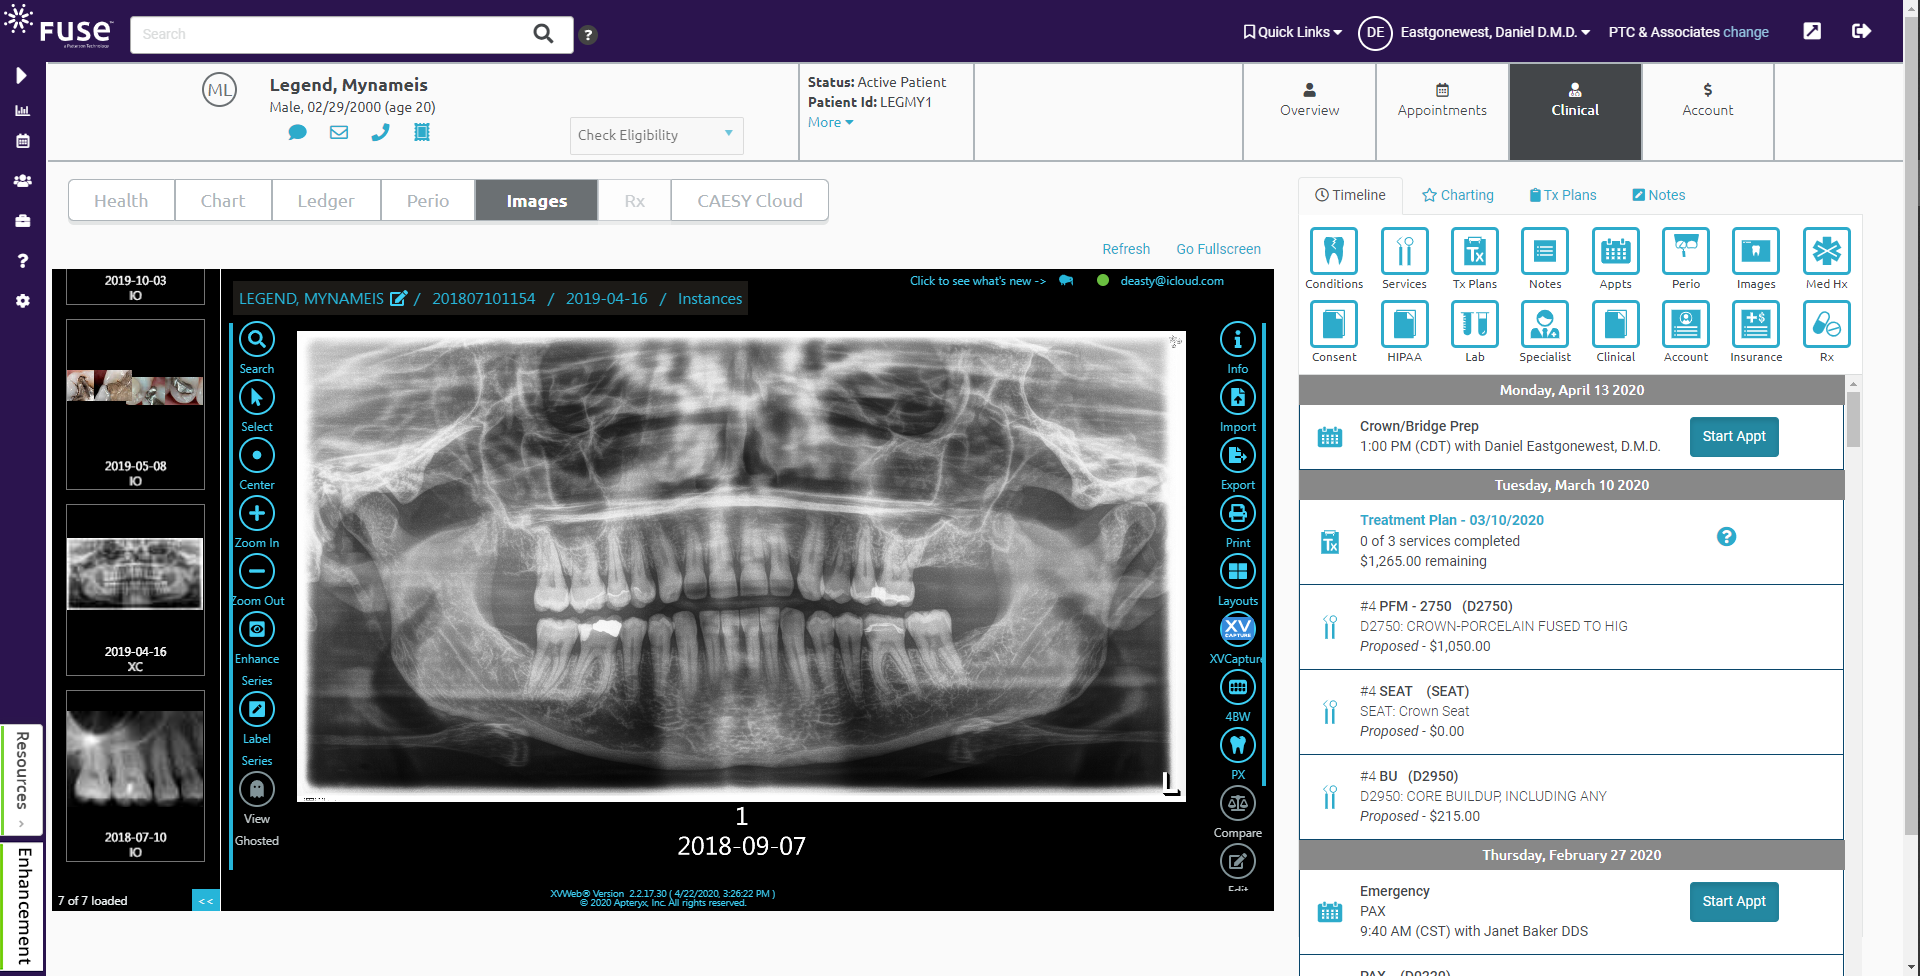 Capture, view and manipulate any 2D images within Fuse from virtually any 2D device.